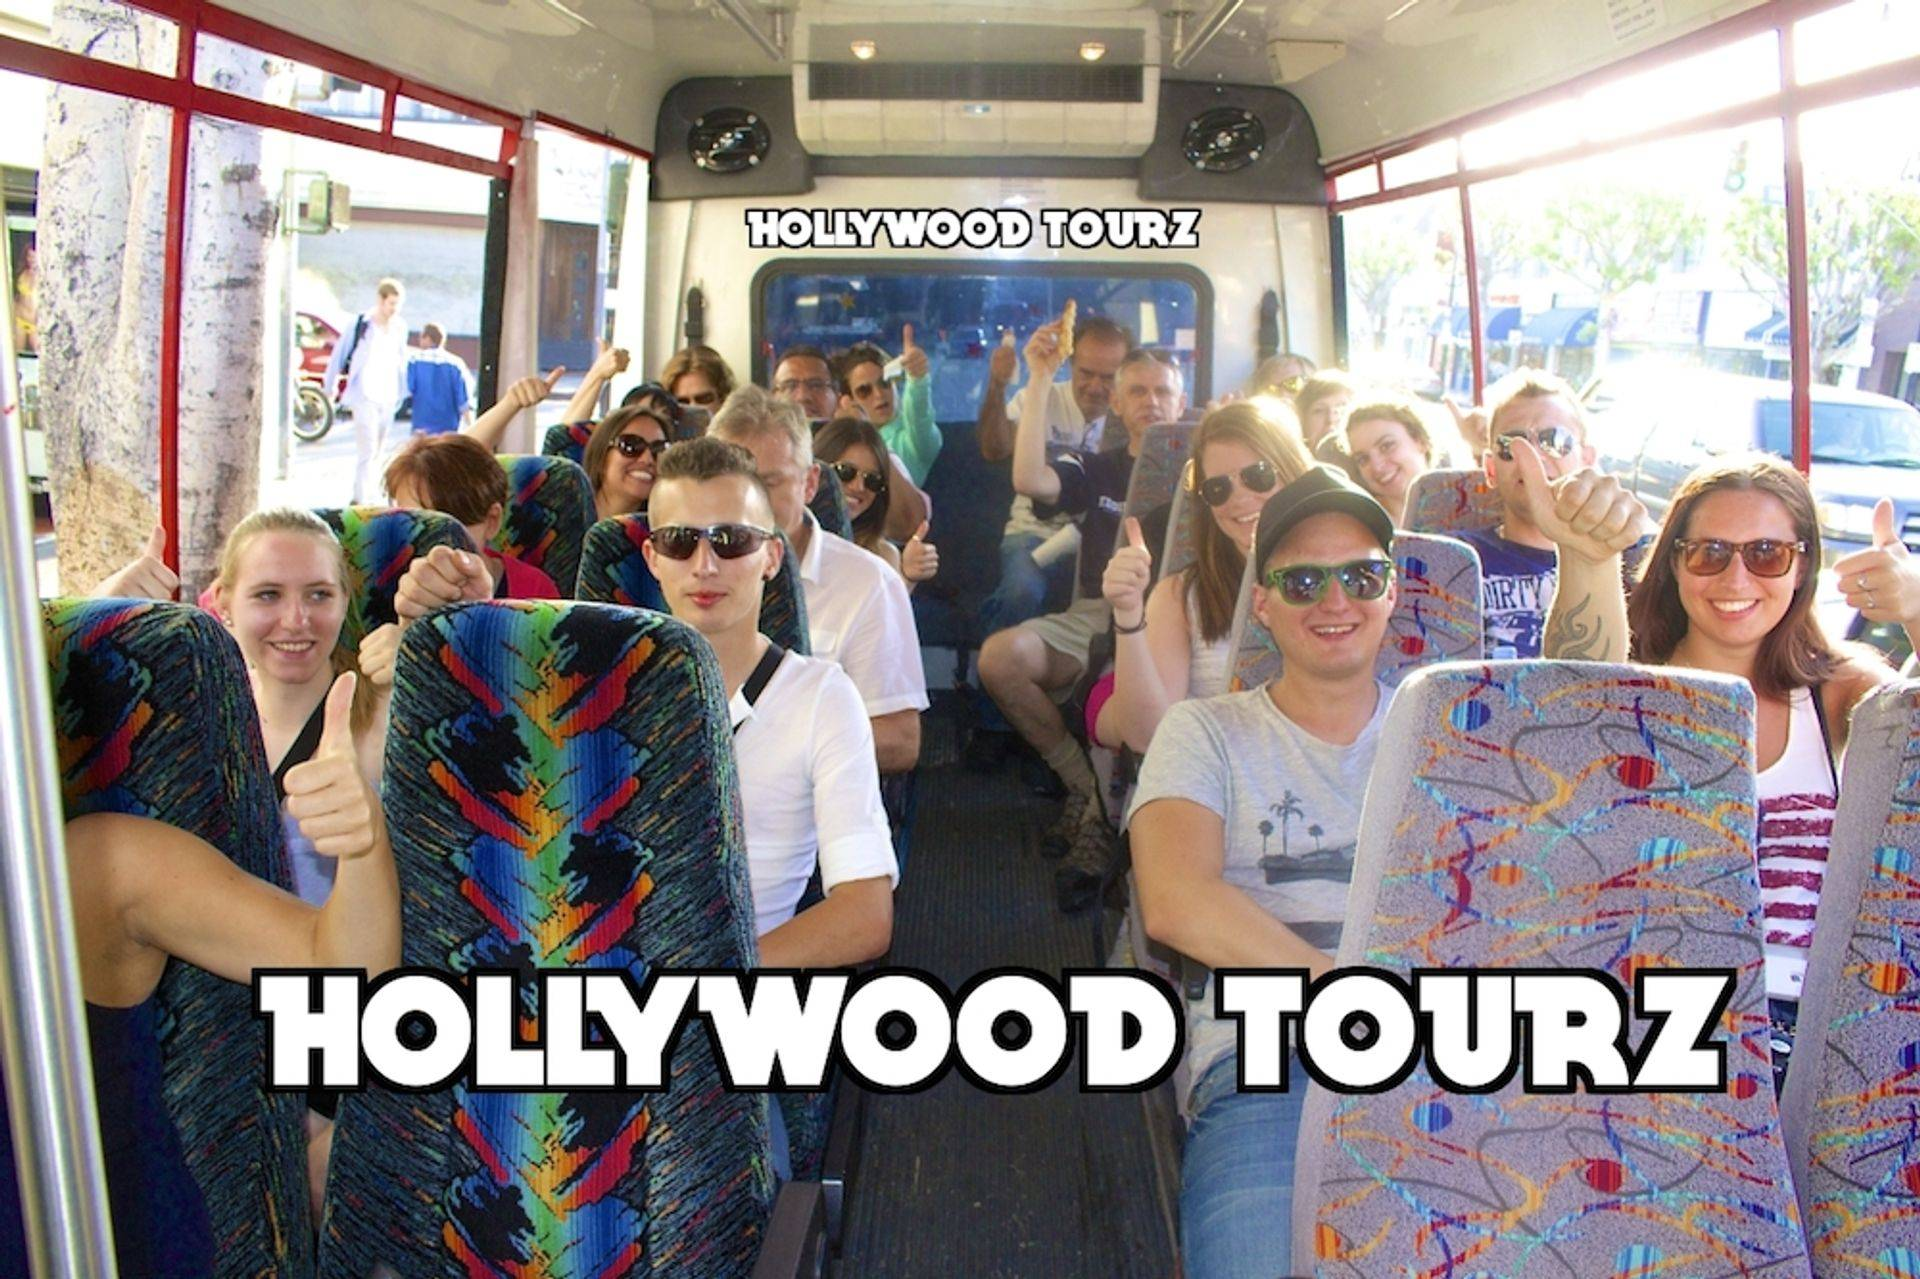 Hollywood Sightseeing Open Bus and Bike Tour in Los Angeles, California